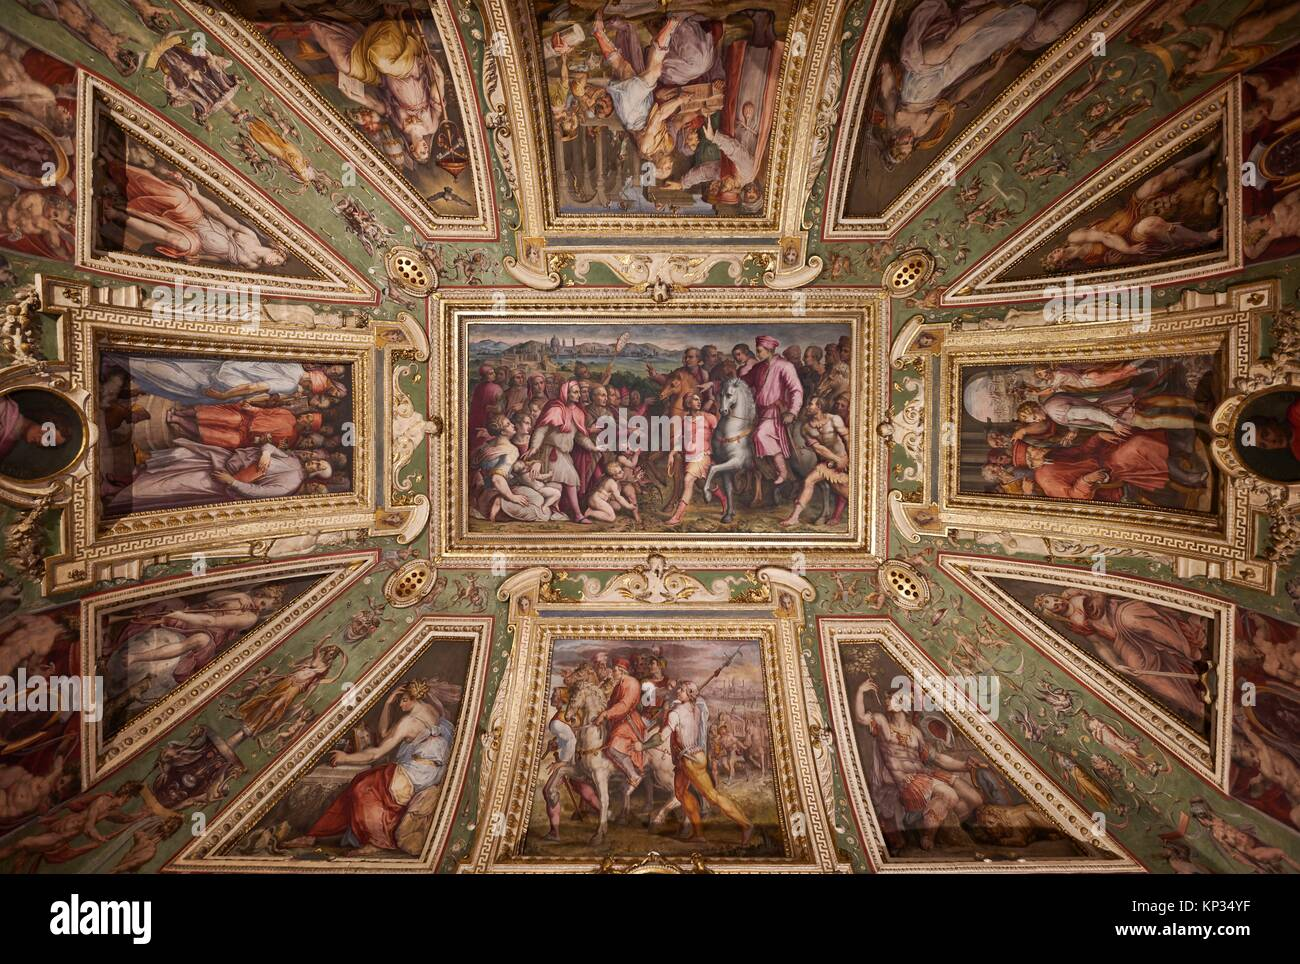 Decorated ceiling inside Palazzo Vecchio (Old Palace), by Giorgio Vasari, Florence, Italy Stock Photo